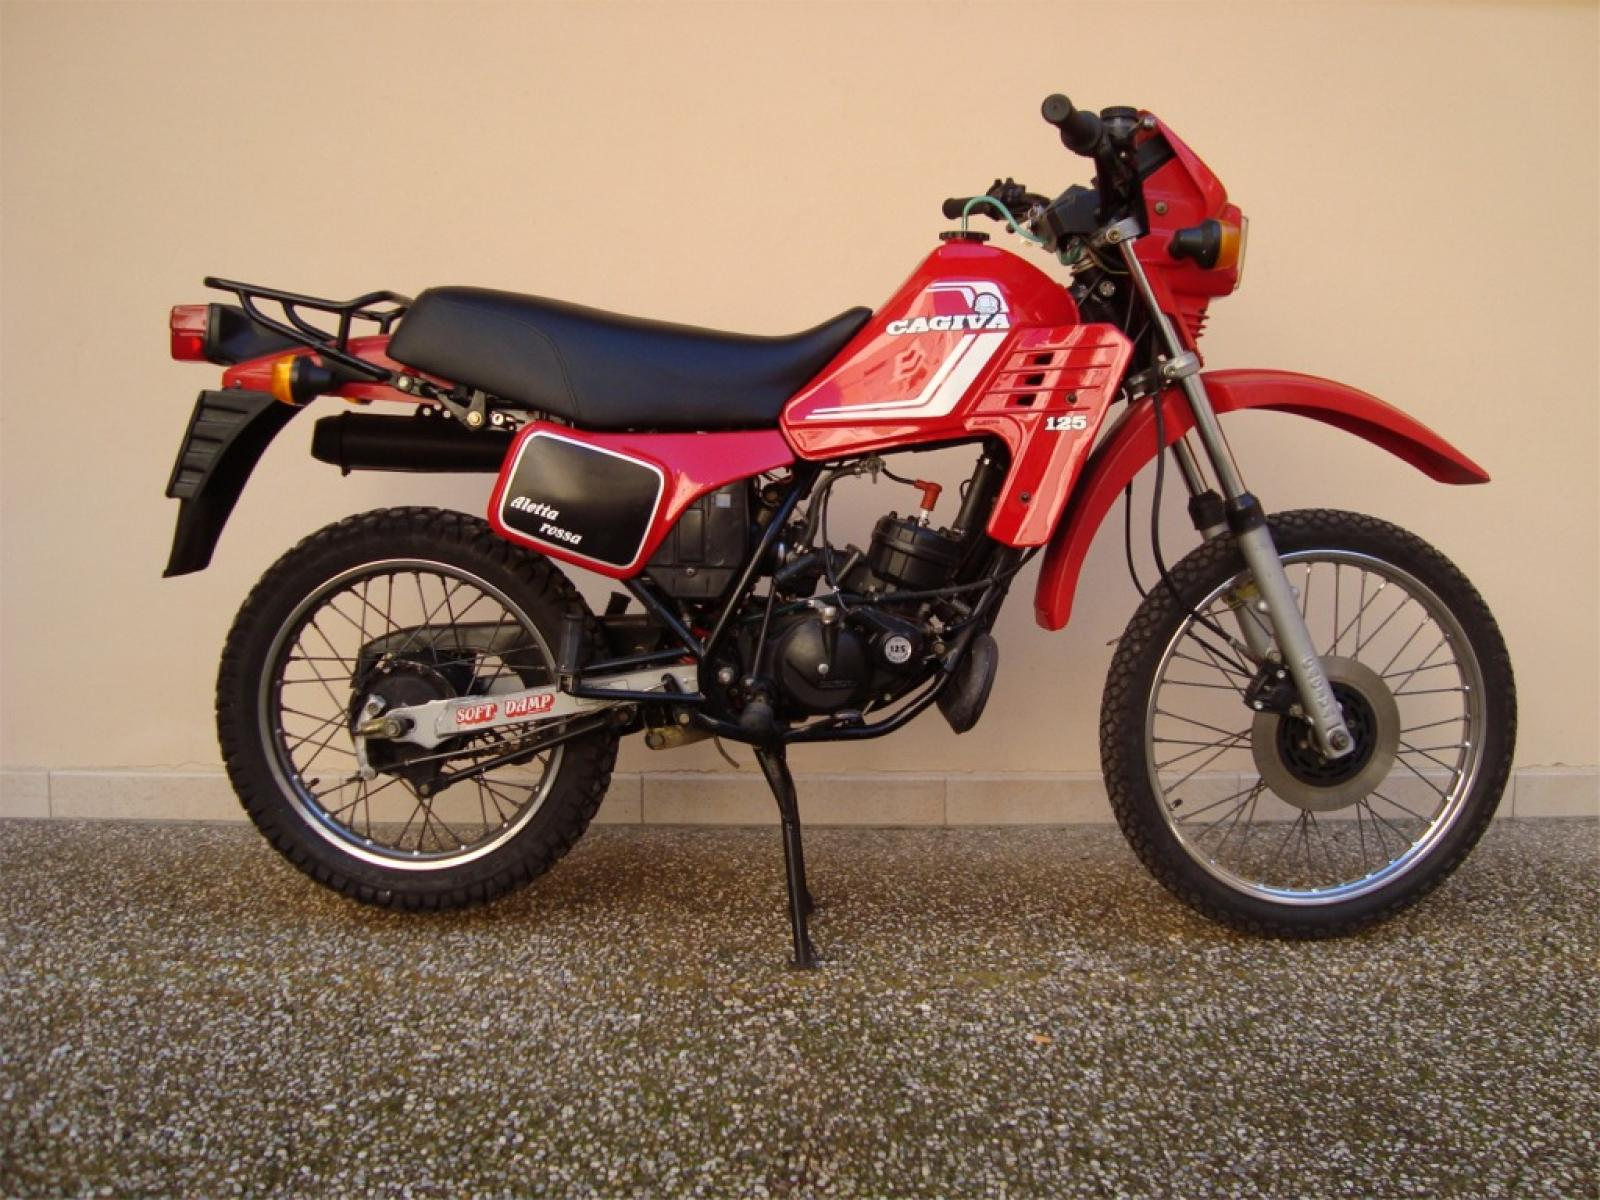 Cagiva images #66744